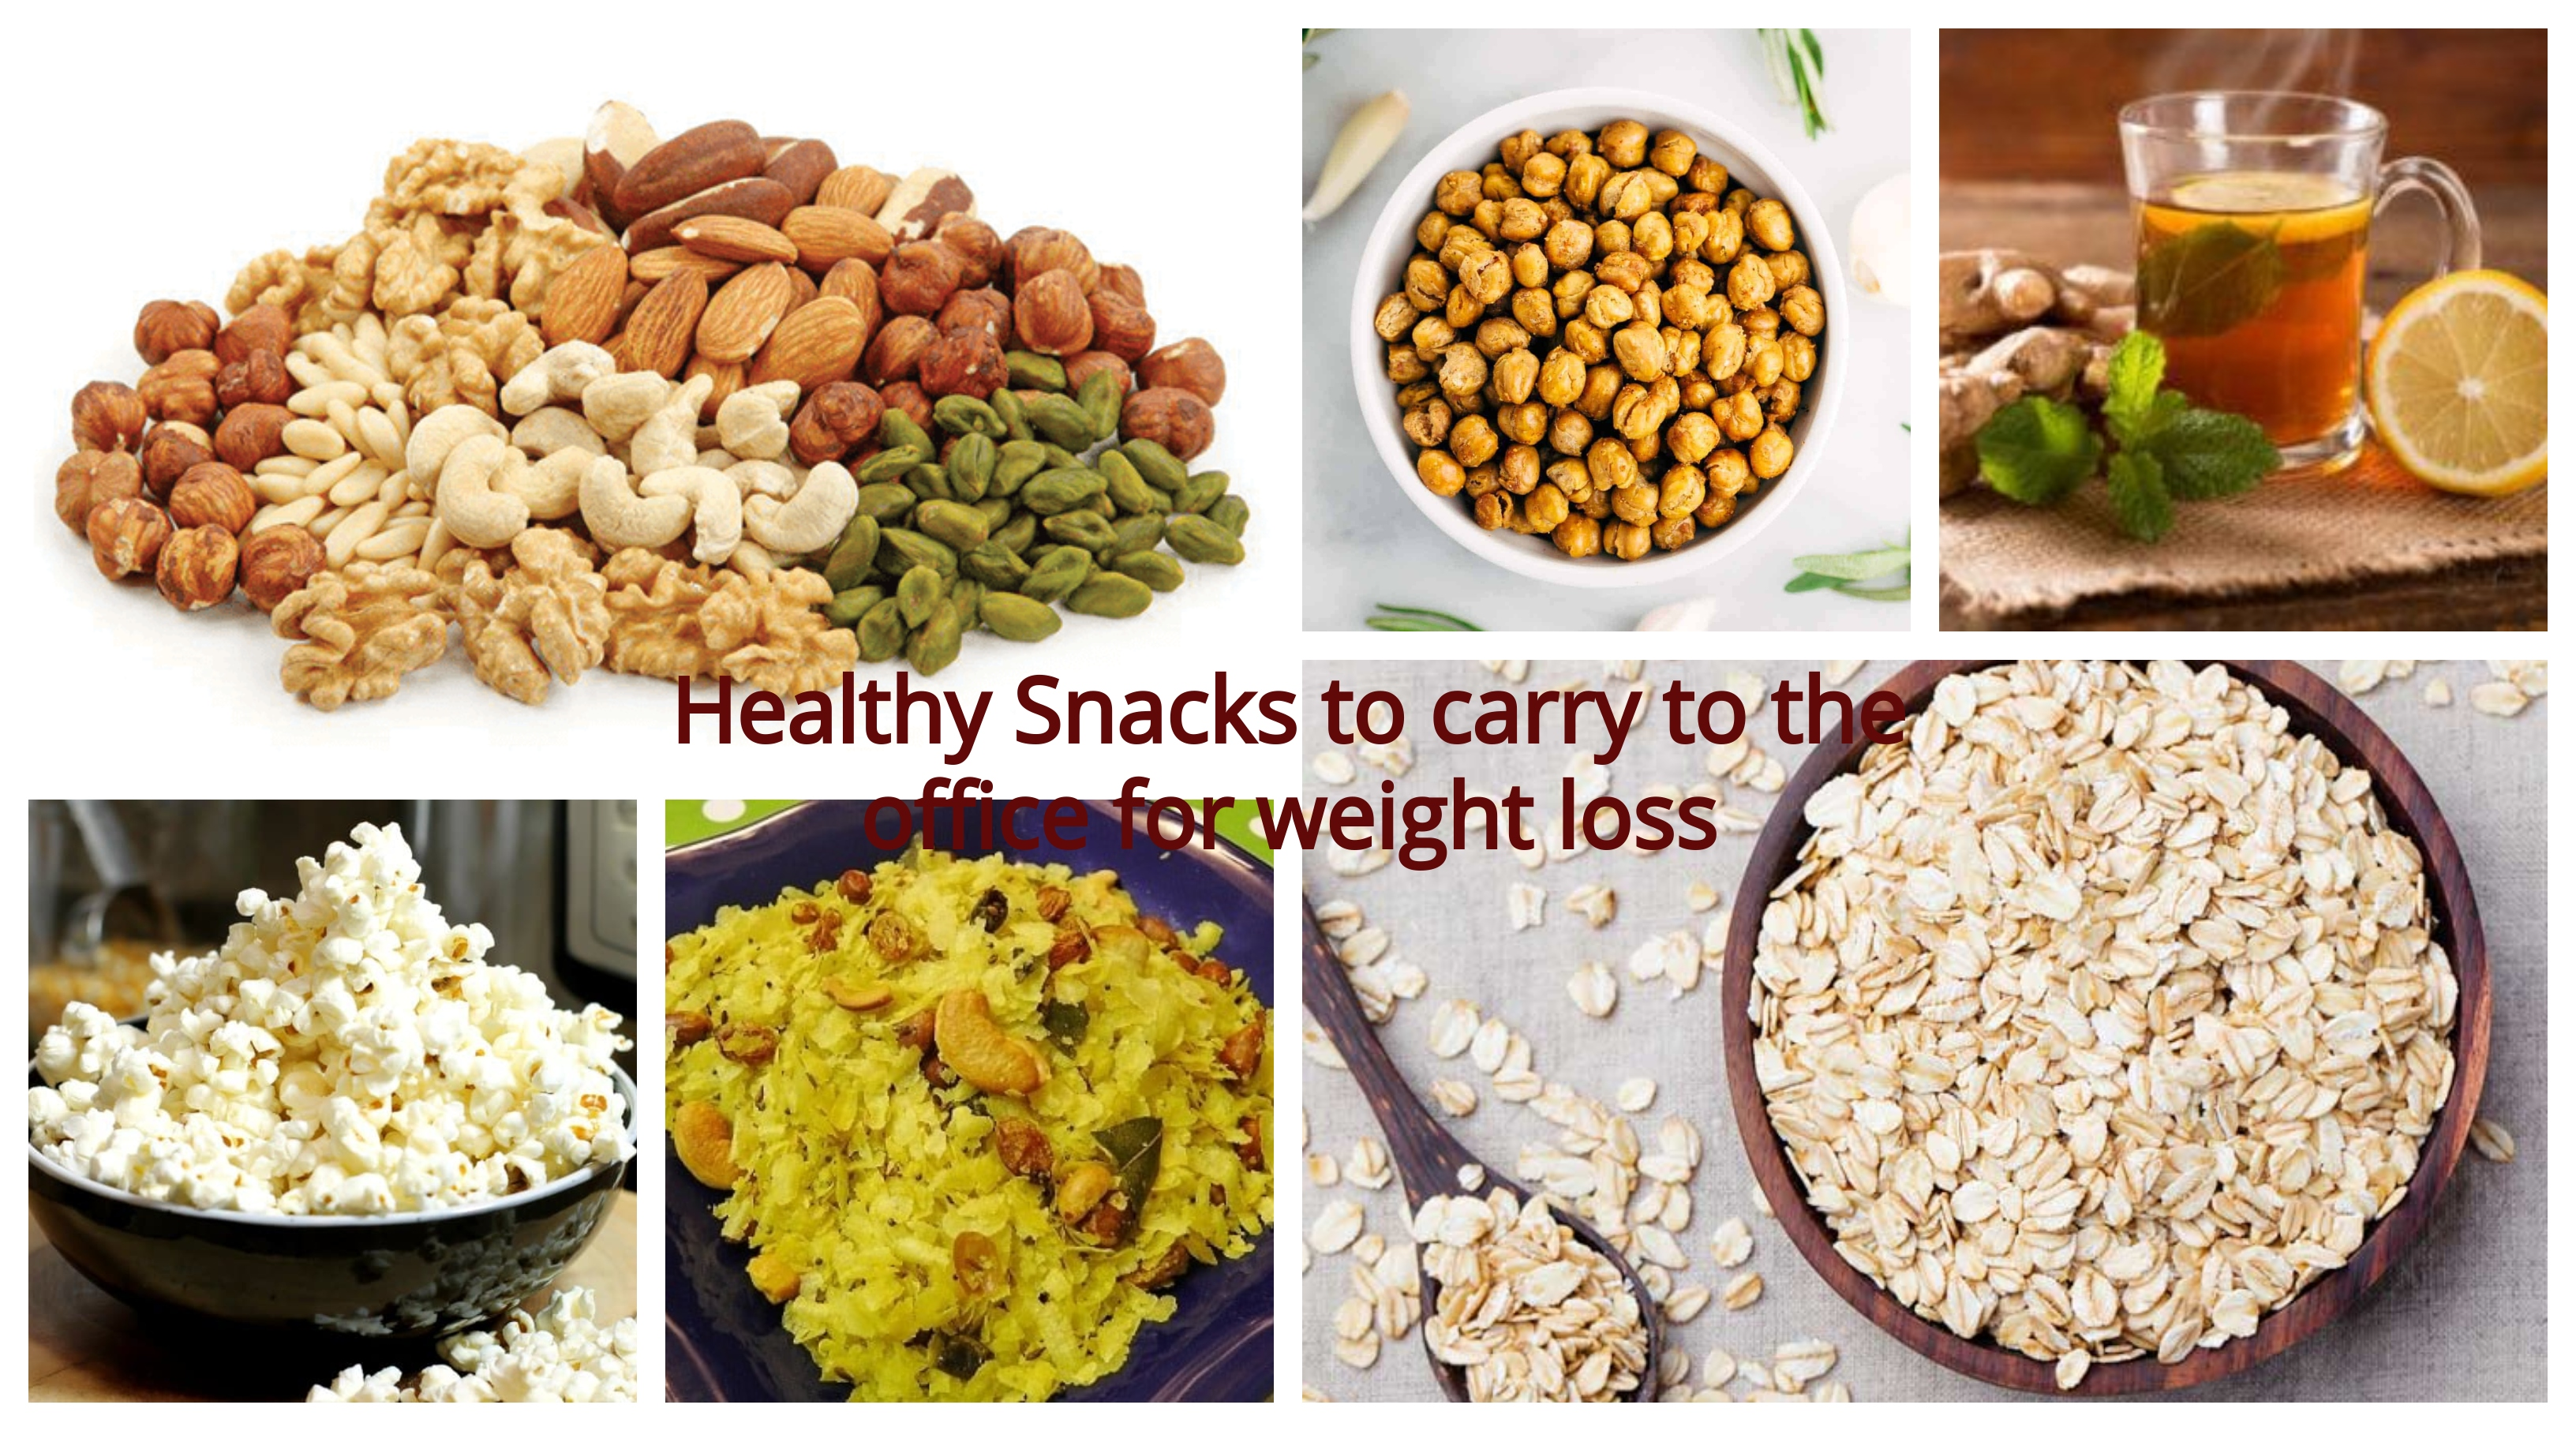 Healthy Indian Snacks for weight loss, Weight loss snacks, Healthy snaks for weight loss